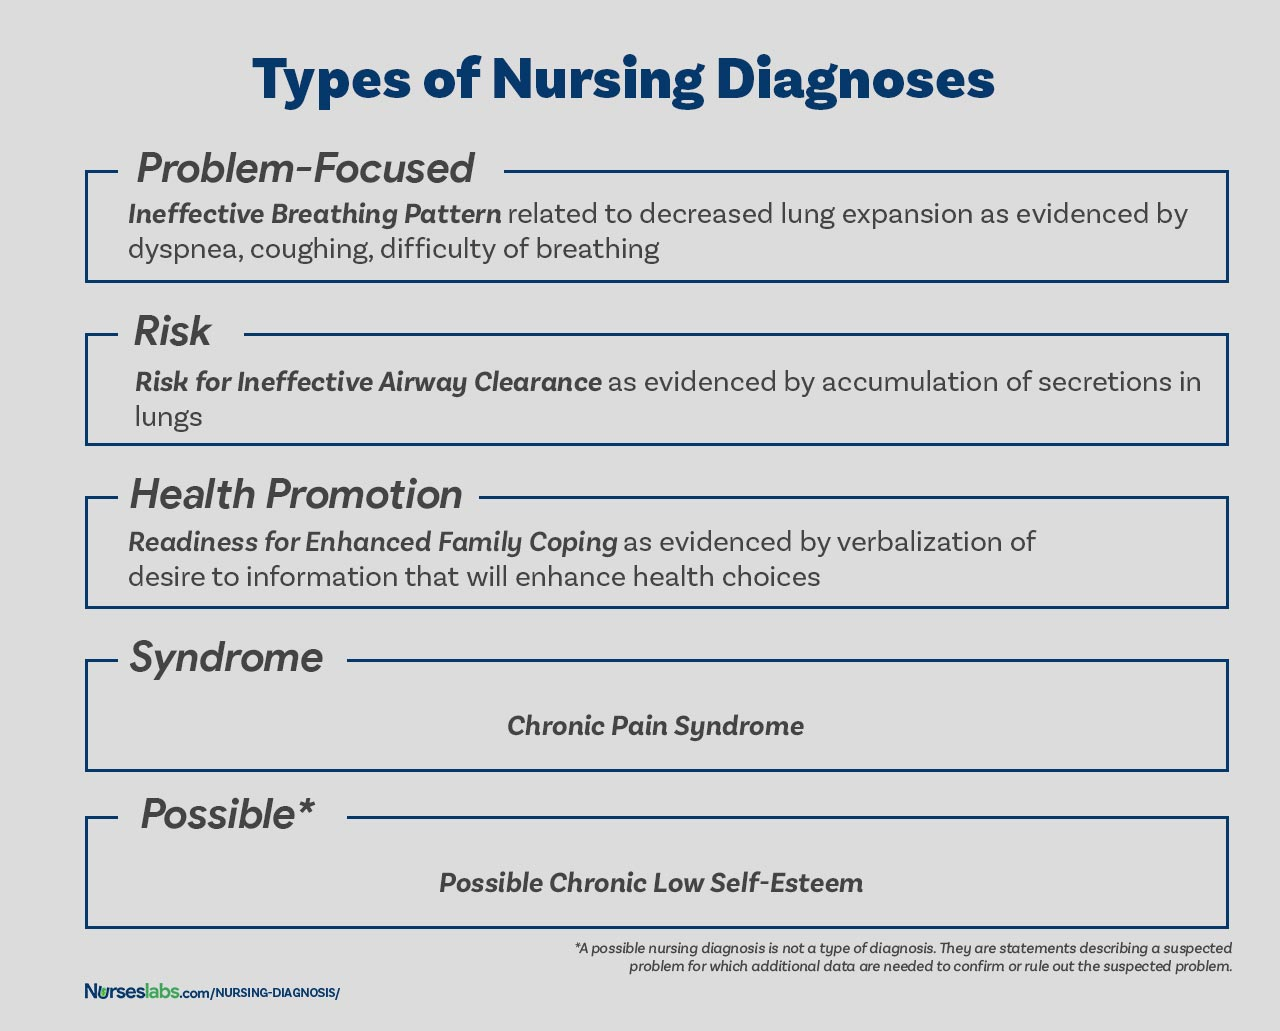 TYPES OF NURSING DIAGNOSES. The four types of nursing diagnosis are Actual (Problem-Focused), Risk, Health Promotion, and Syndrome.